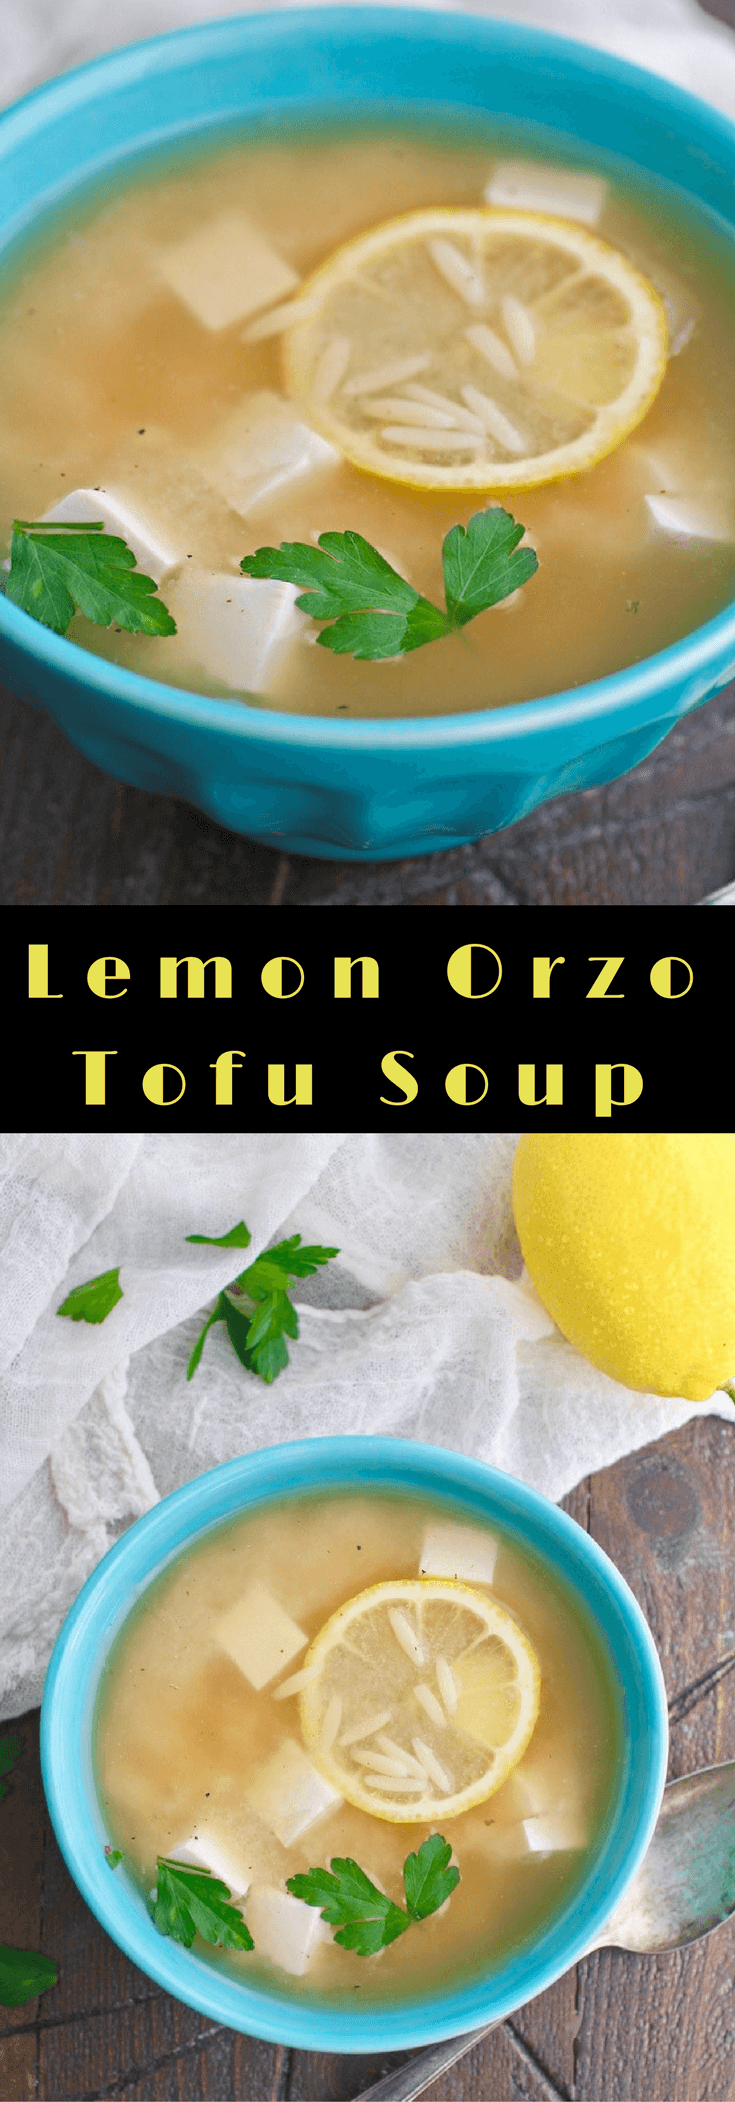 Lemon Orzo Tofu Soup is fun for a fresh dish. You'll love the flavors!